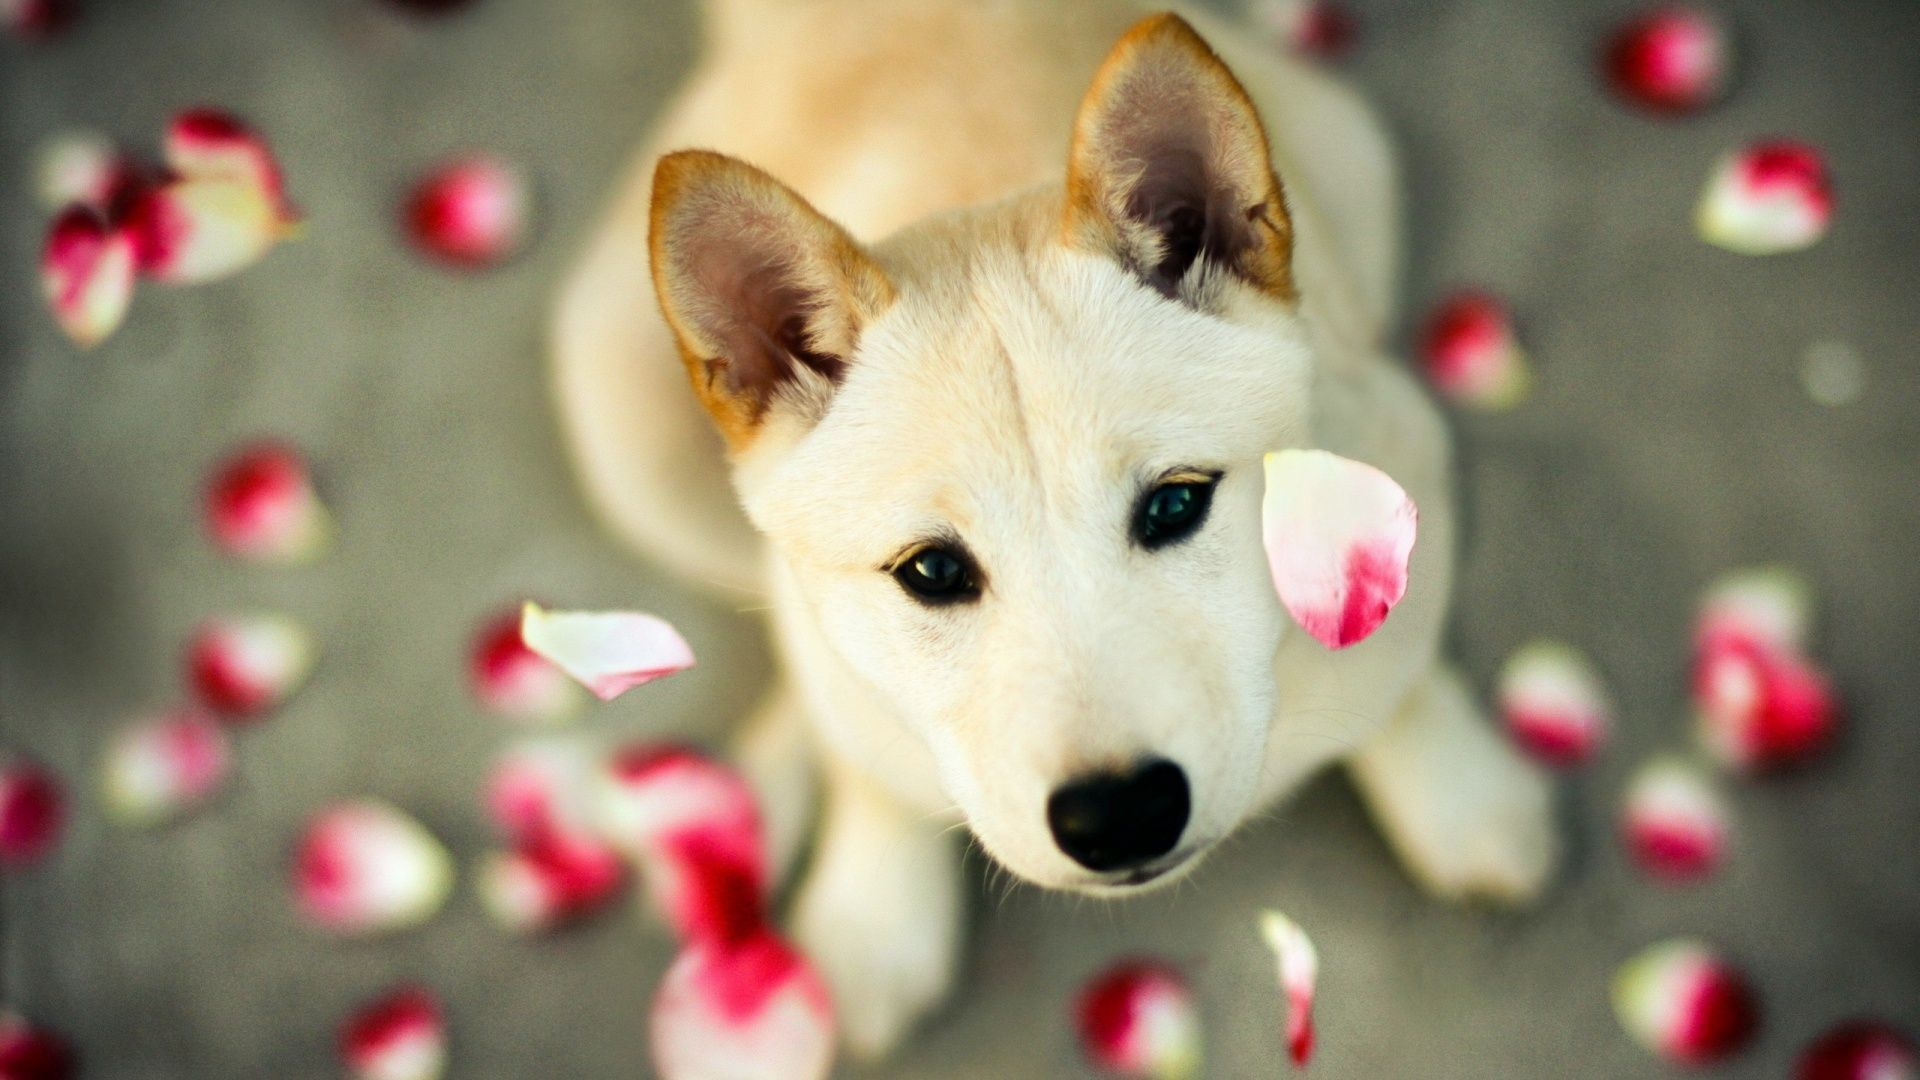 Dogs Wallpapers Hd Pictures One Hd Wallpaper Pictures 1920 1080 Cute Dogs Images Wallpapers 53 Wallpapers Ad Cute Dog Wallpaper Dog Wallpaper Cute Animals